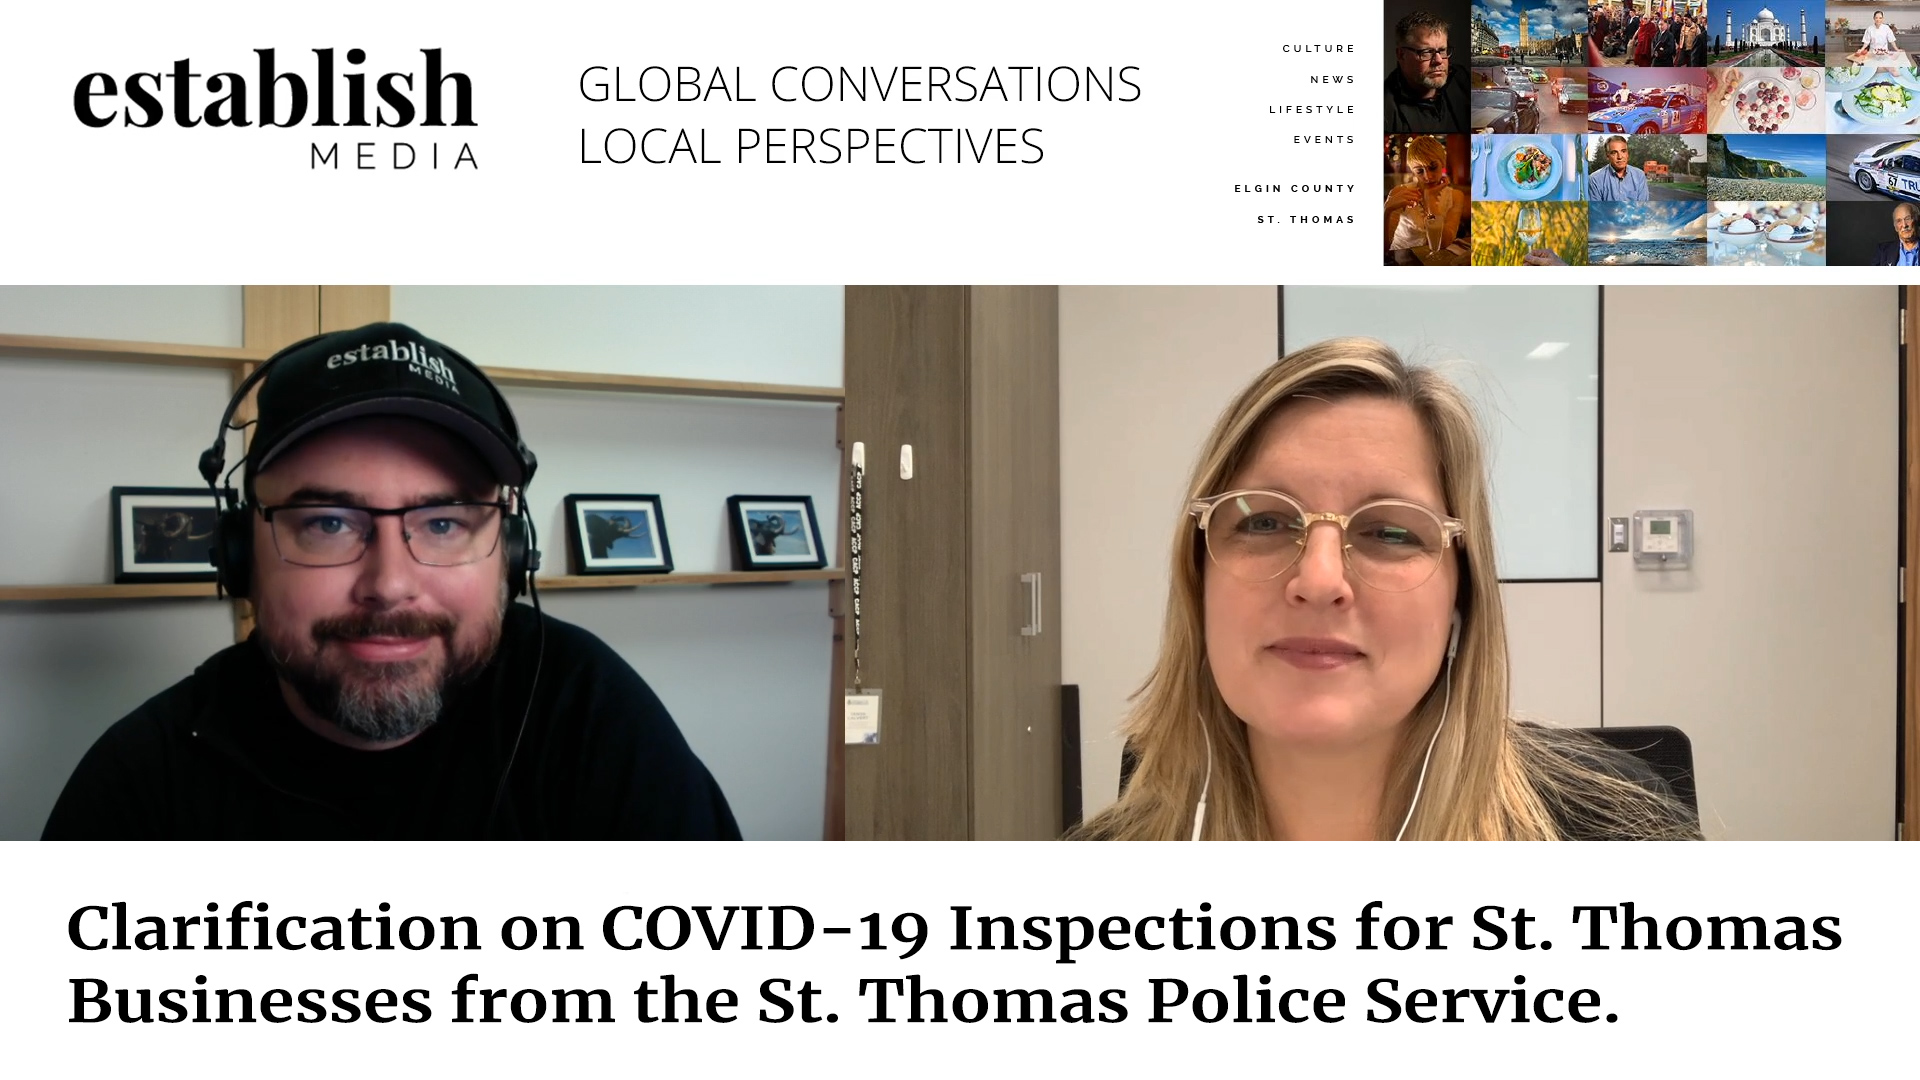 Clarification on the new COVID-19 Inspections for St. Thomas Businesses from the St Thomas Police Service